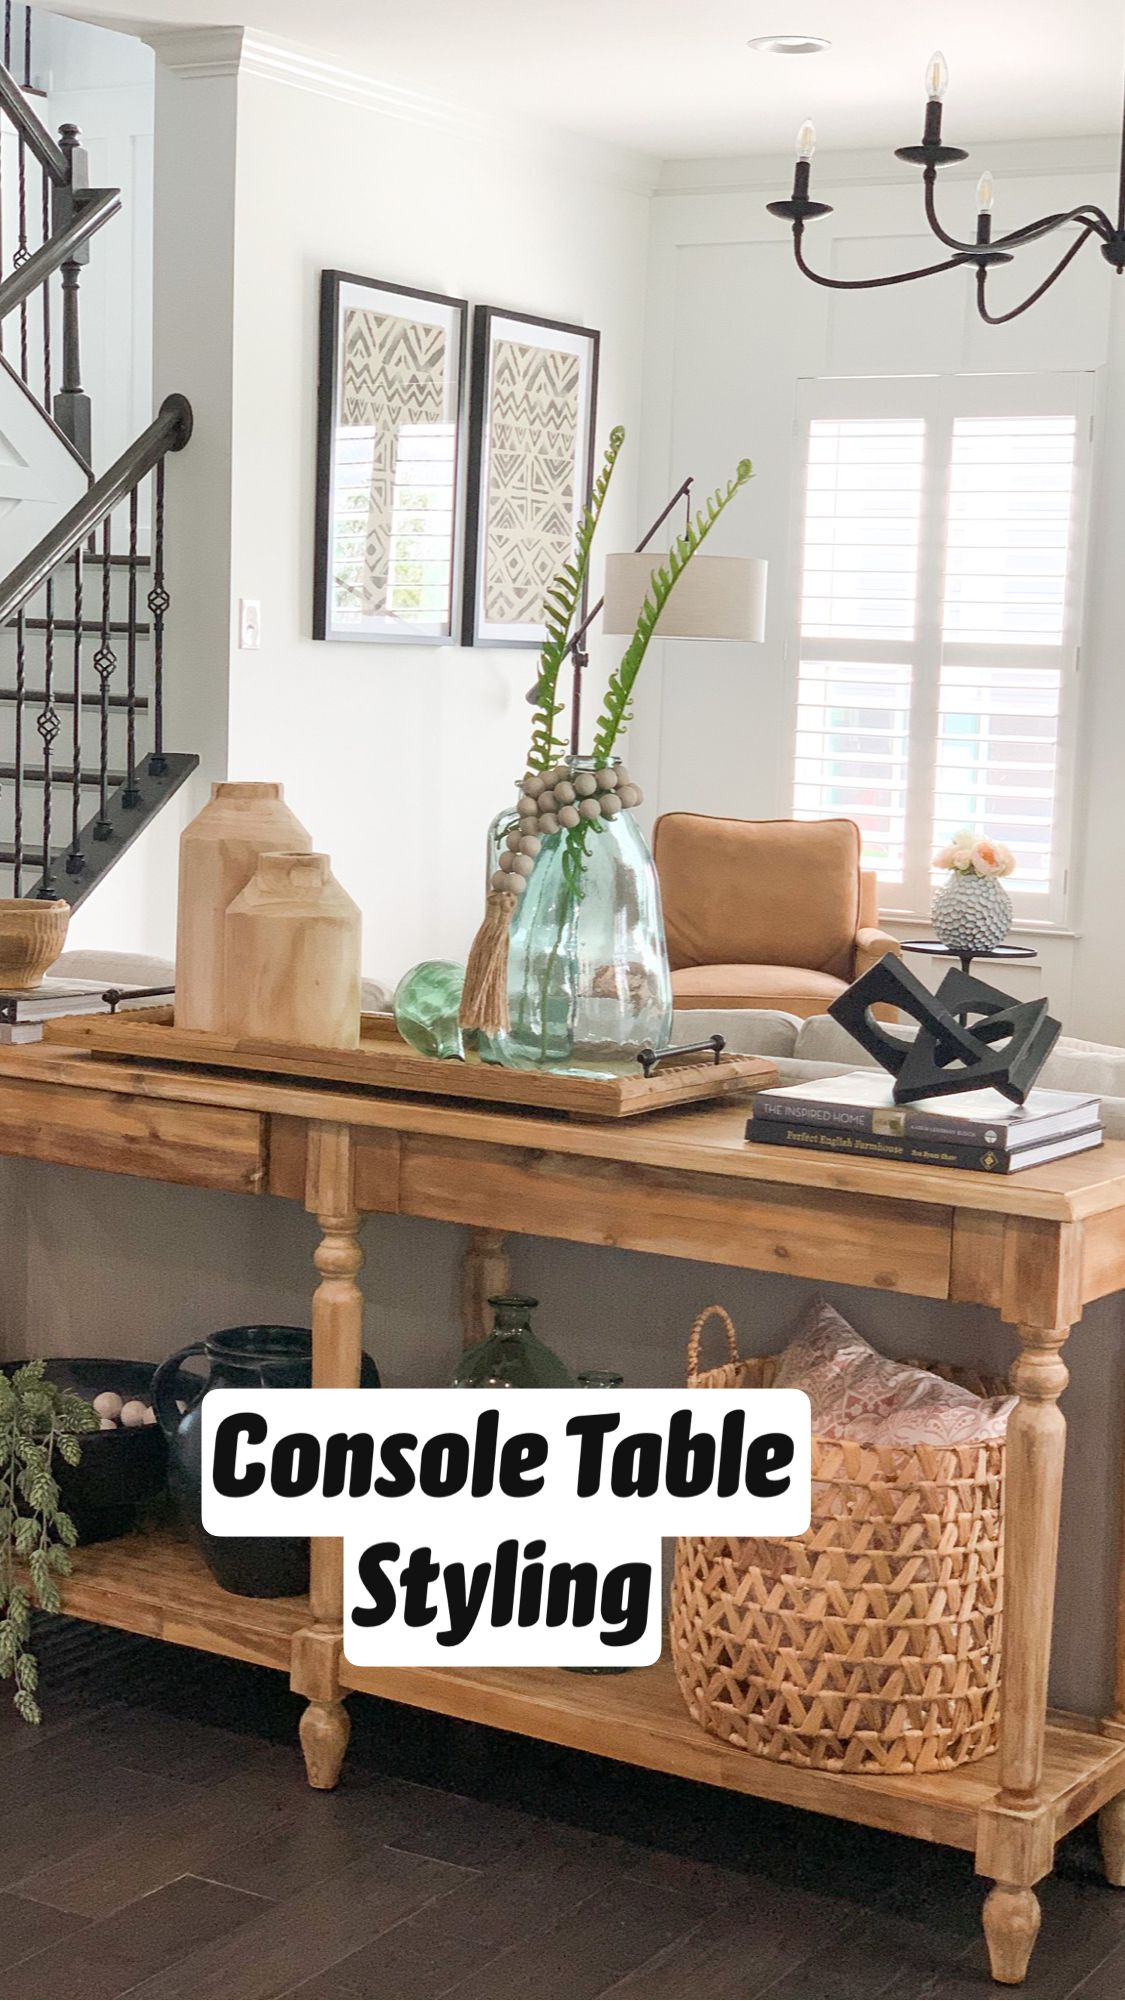 Photo of Console Table Styling